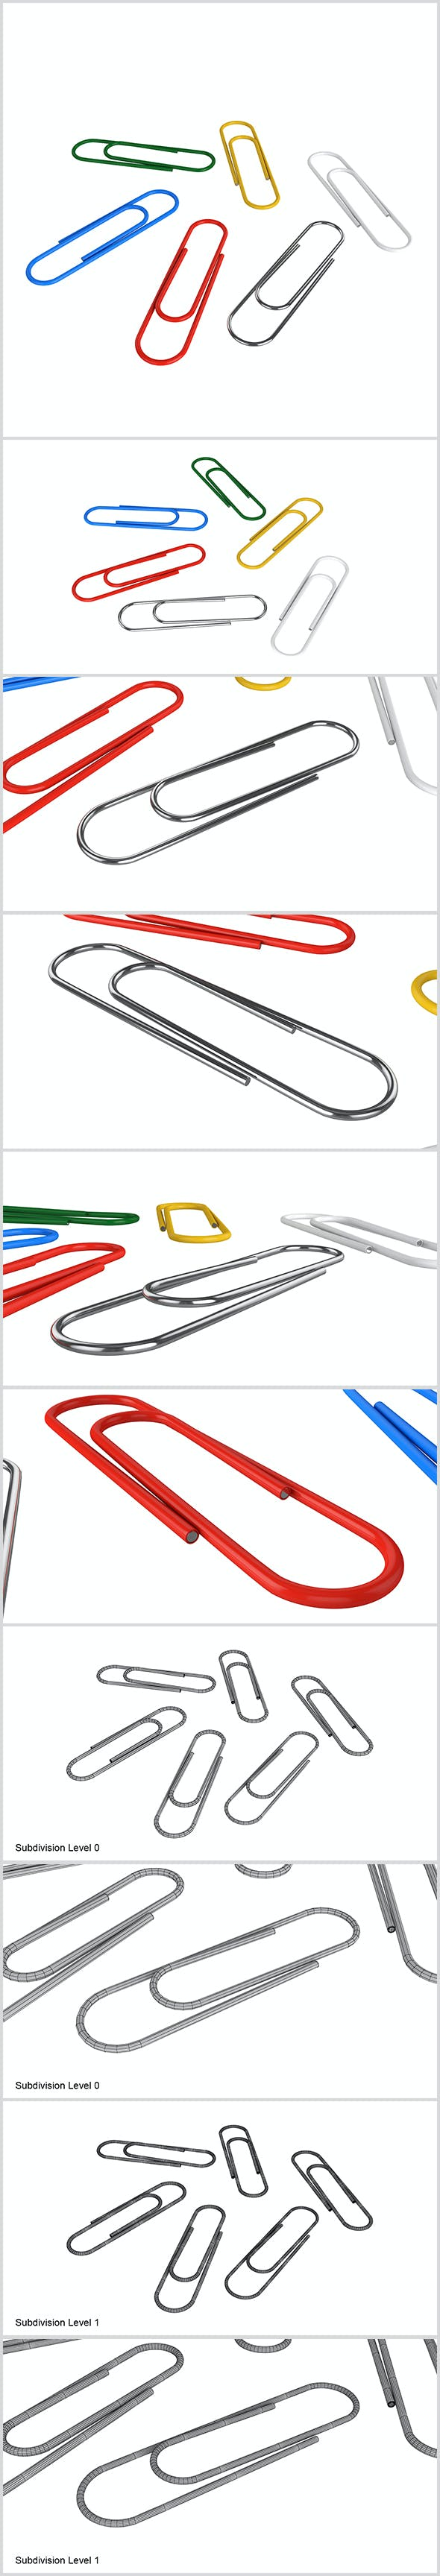 Paper Clip - 3DOcean Item for Sale